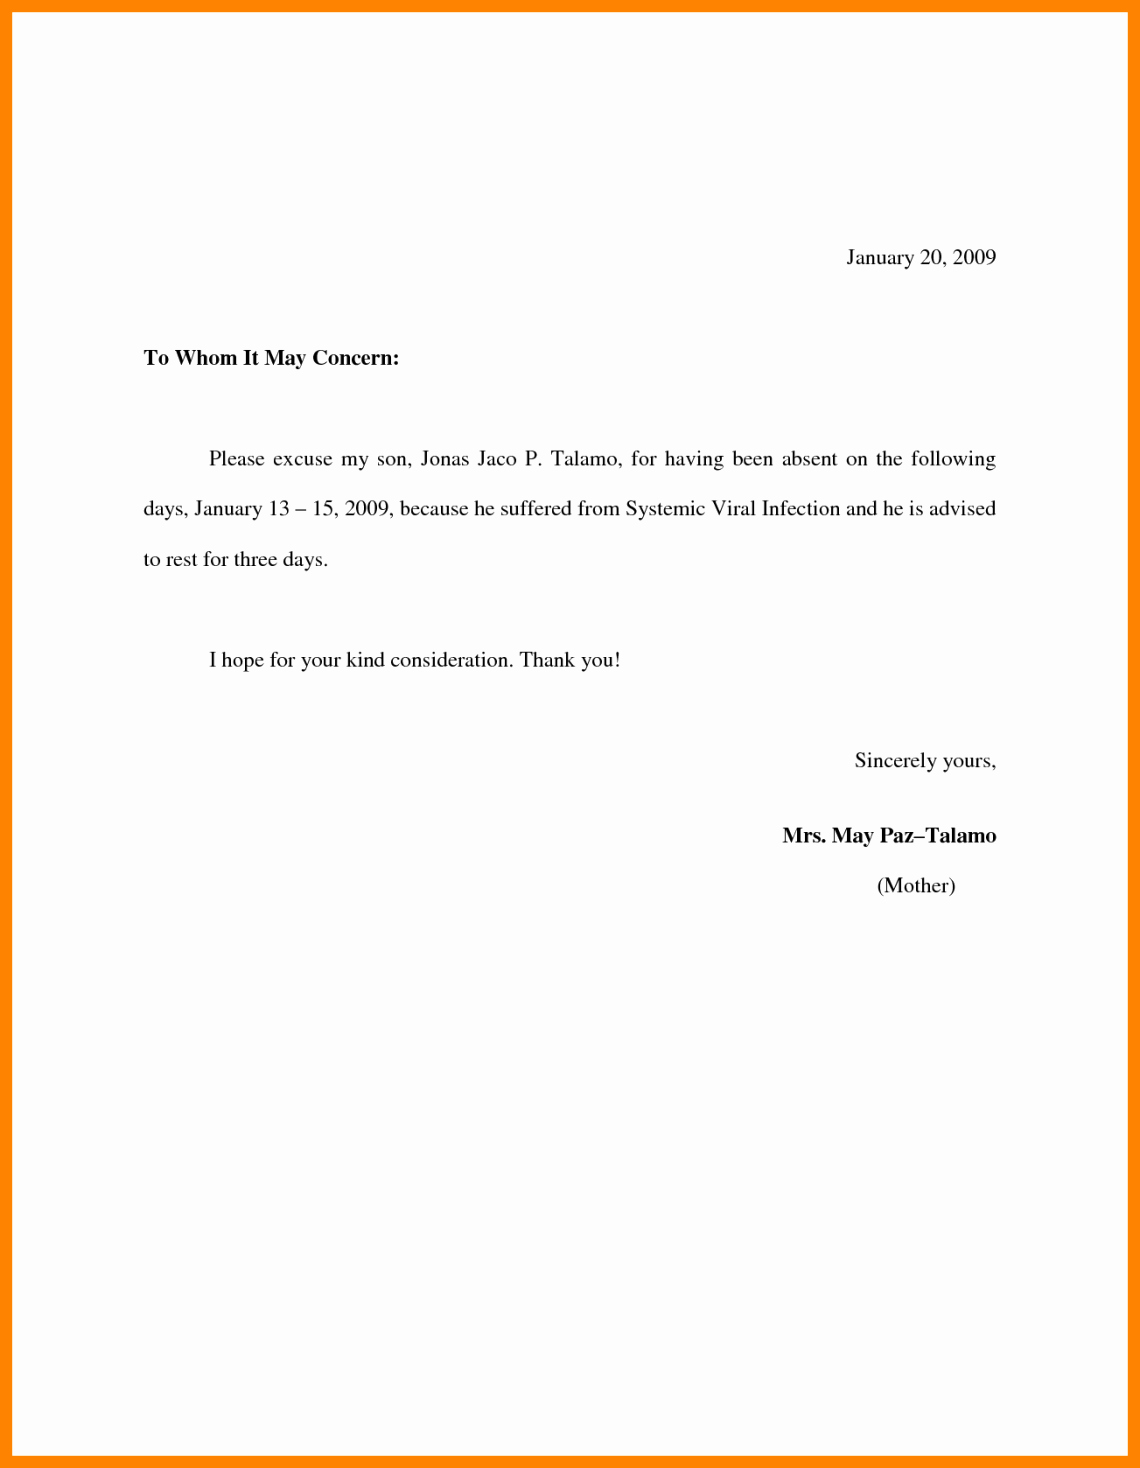 Family Reunion Letters Template Luxury 21 Awesome Family Reunion Letter Template